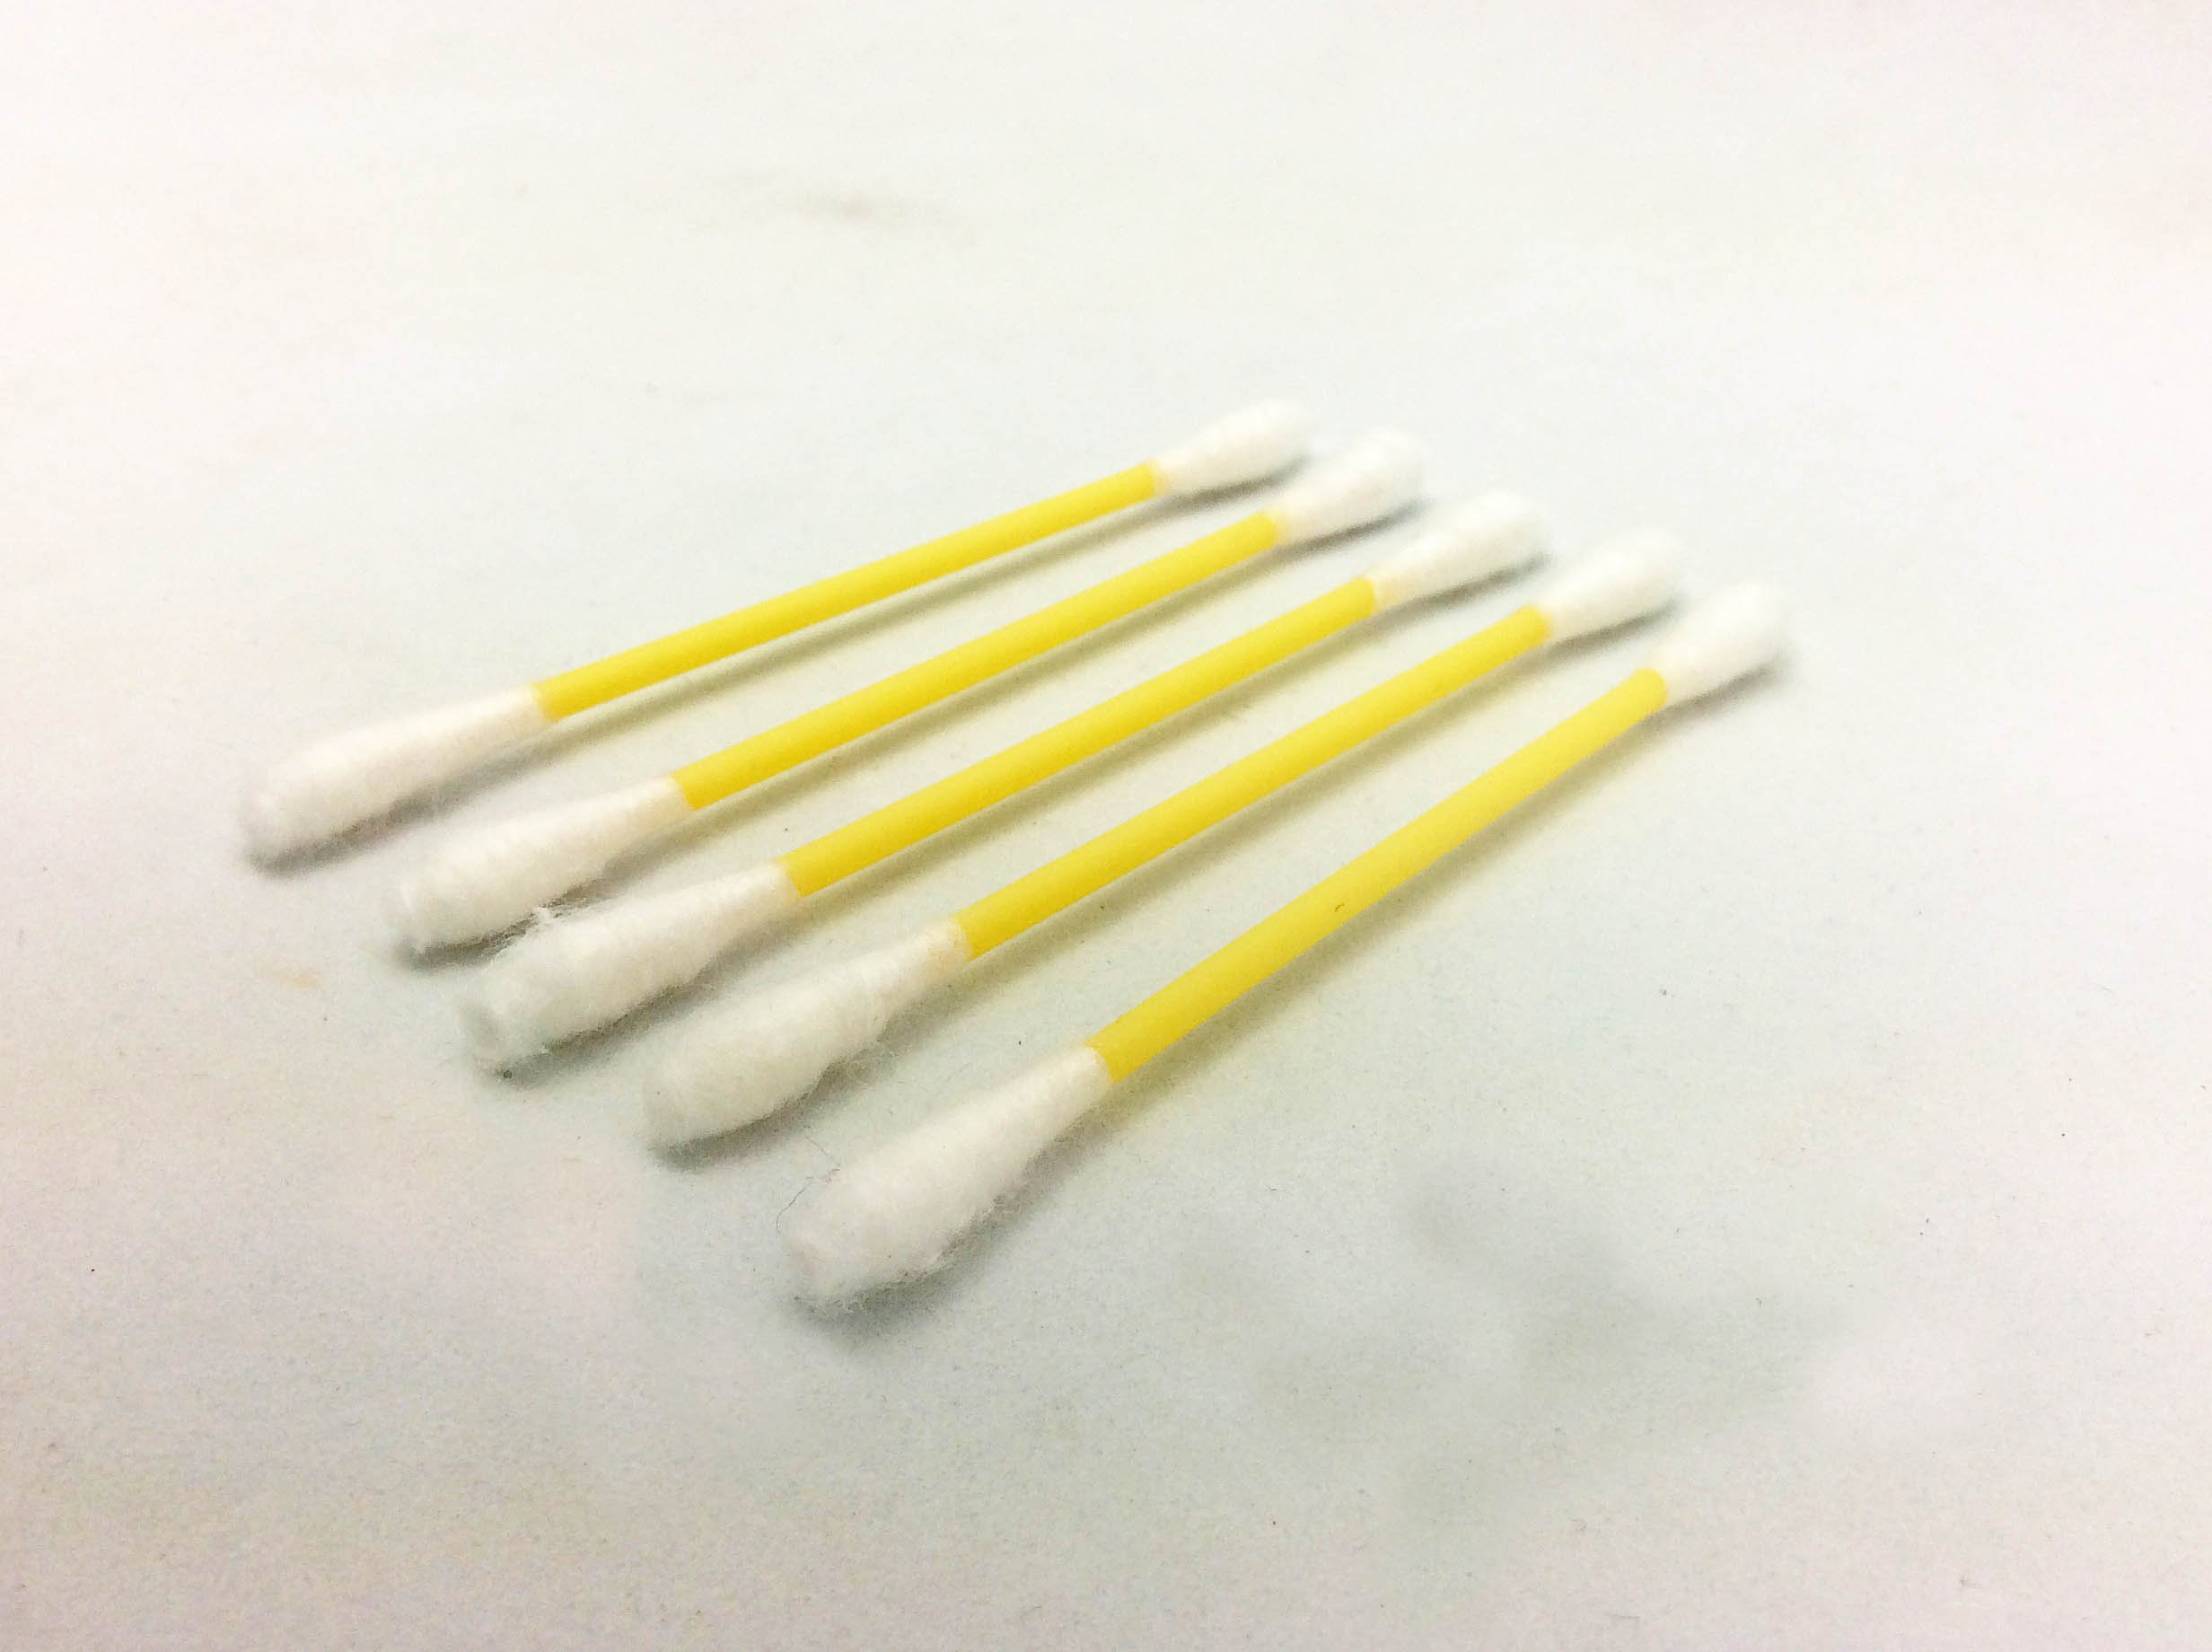 Cotton Swabs are great for doing small touch ups and reaching small, delicate areas.